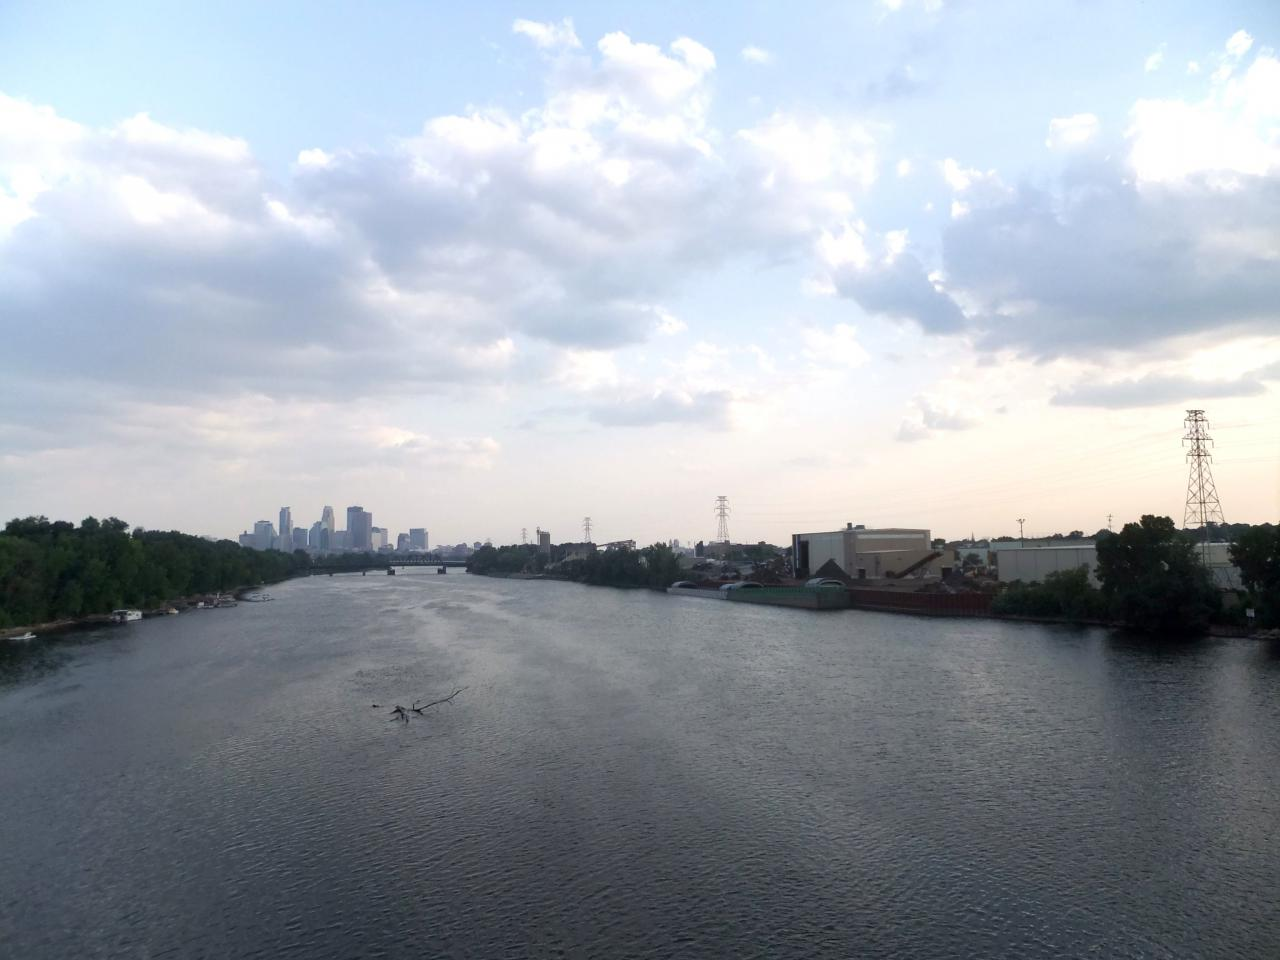 View of downtown Mpls from the Lowry bridge